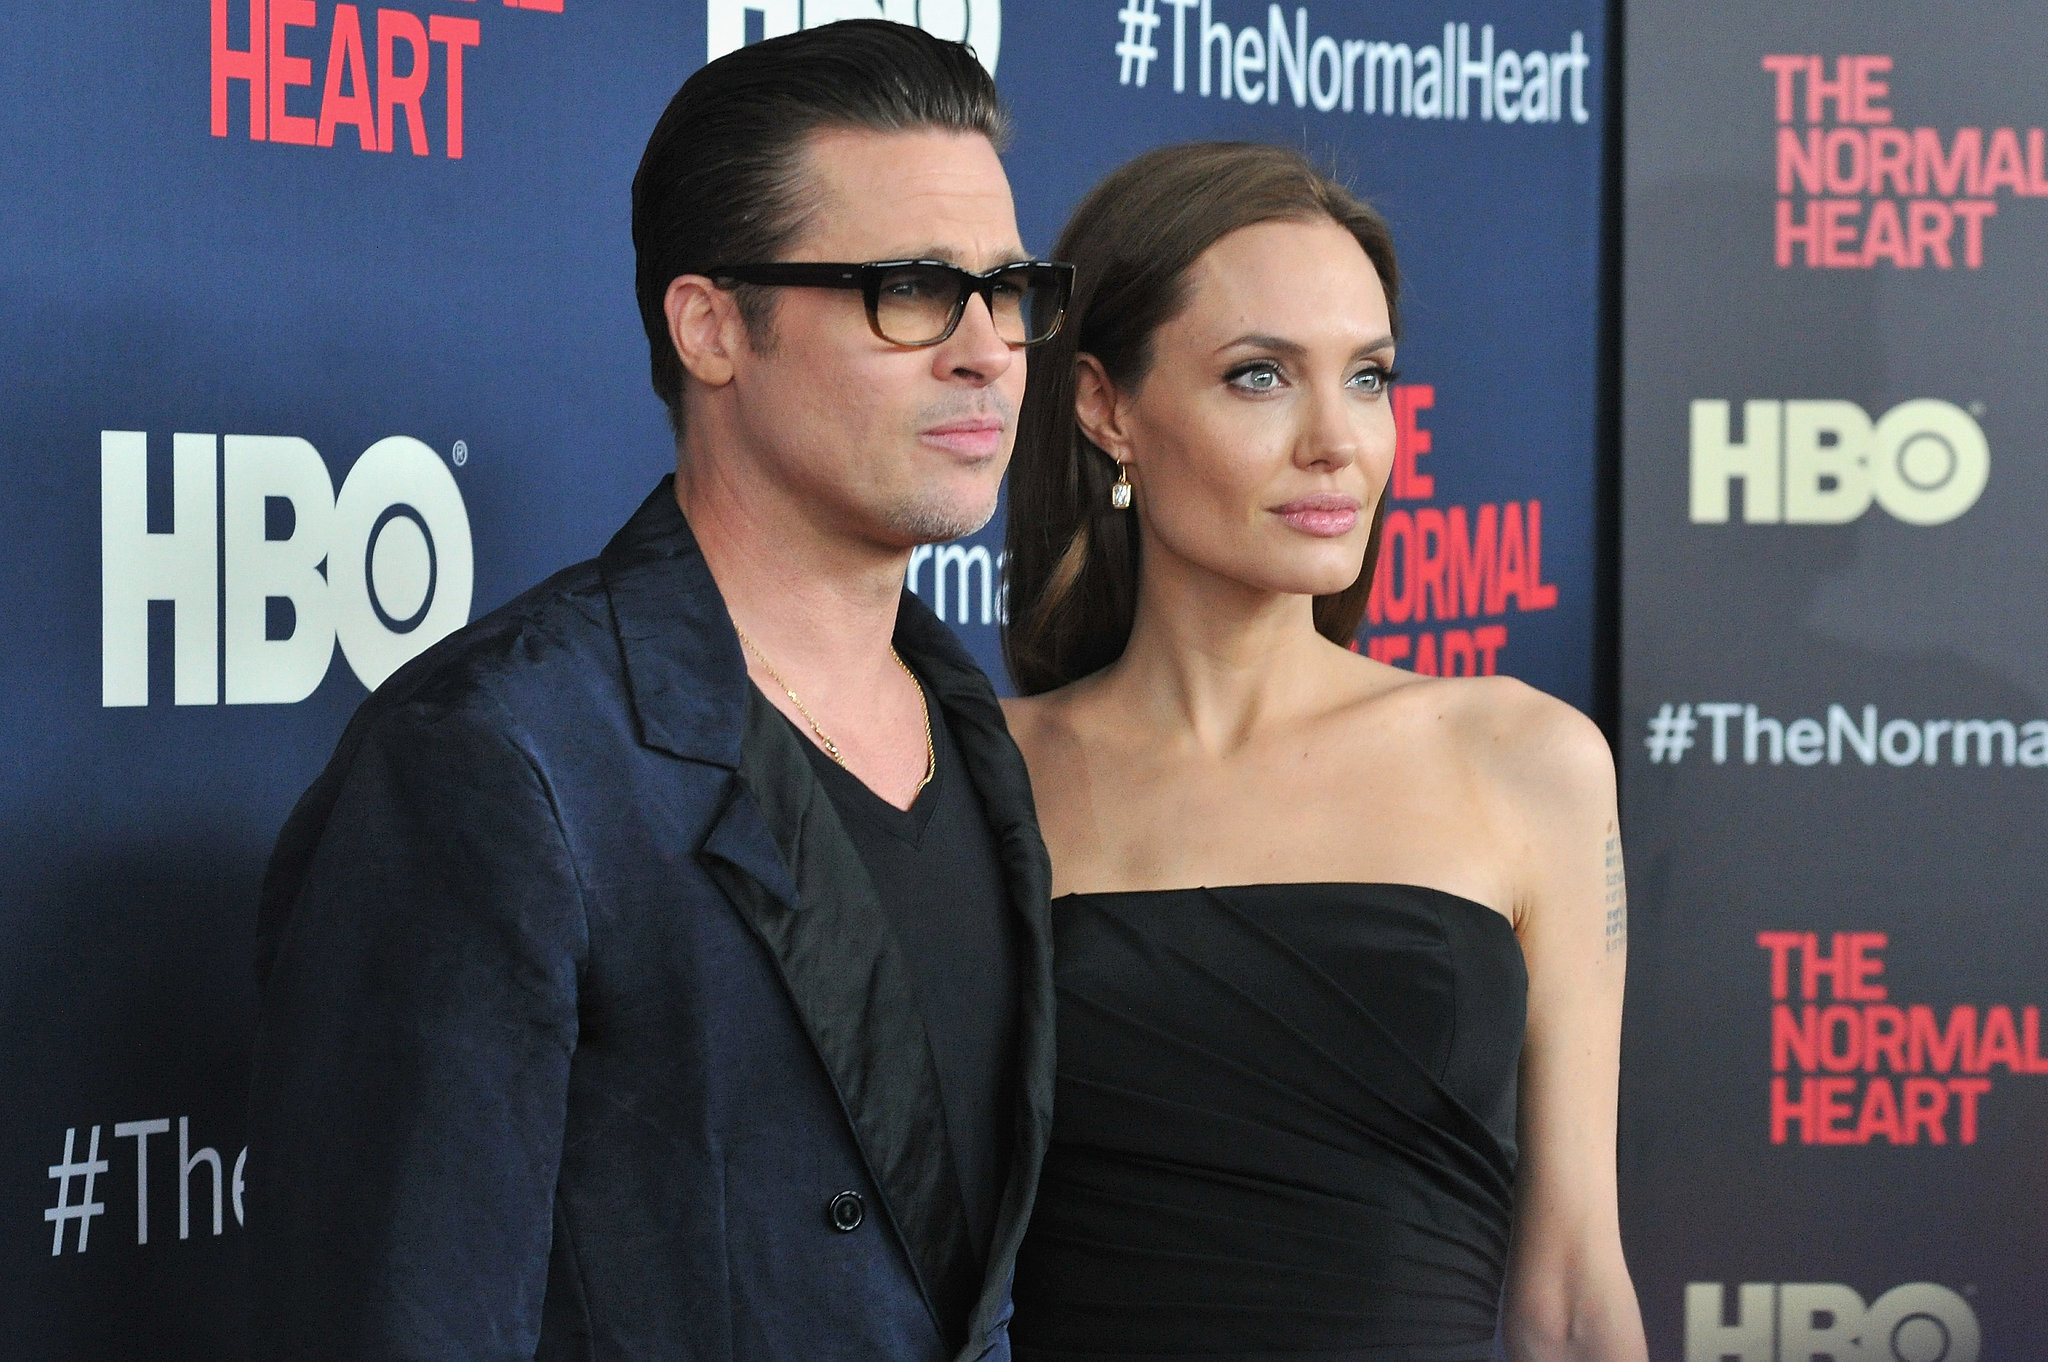 Brad Pitt and Angelina Jolie Step Out For a Star-Studded Premiere